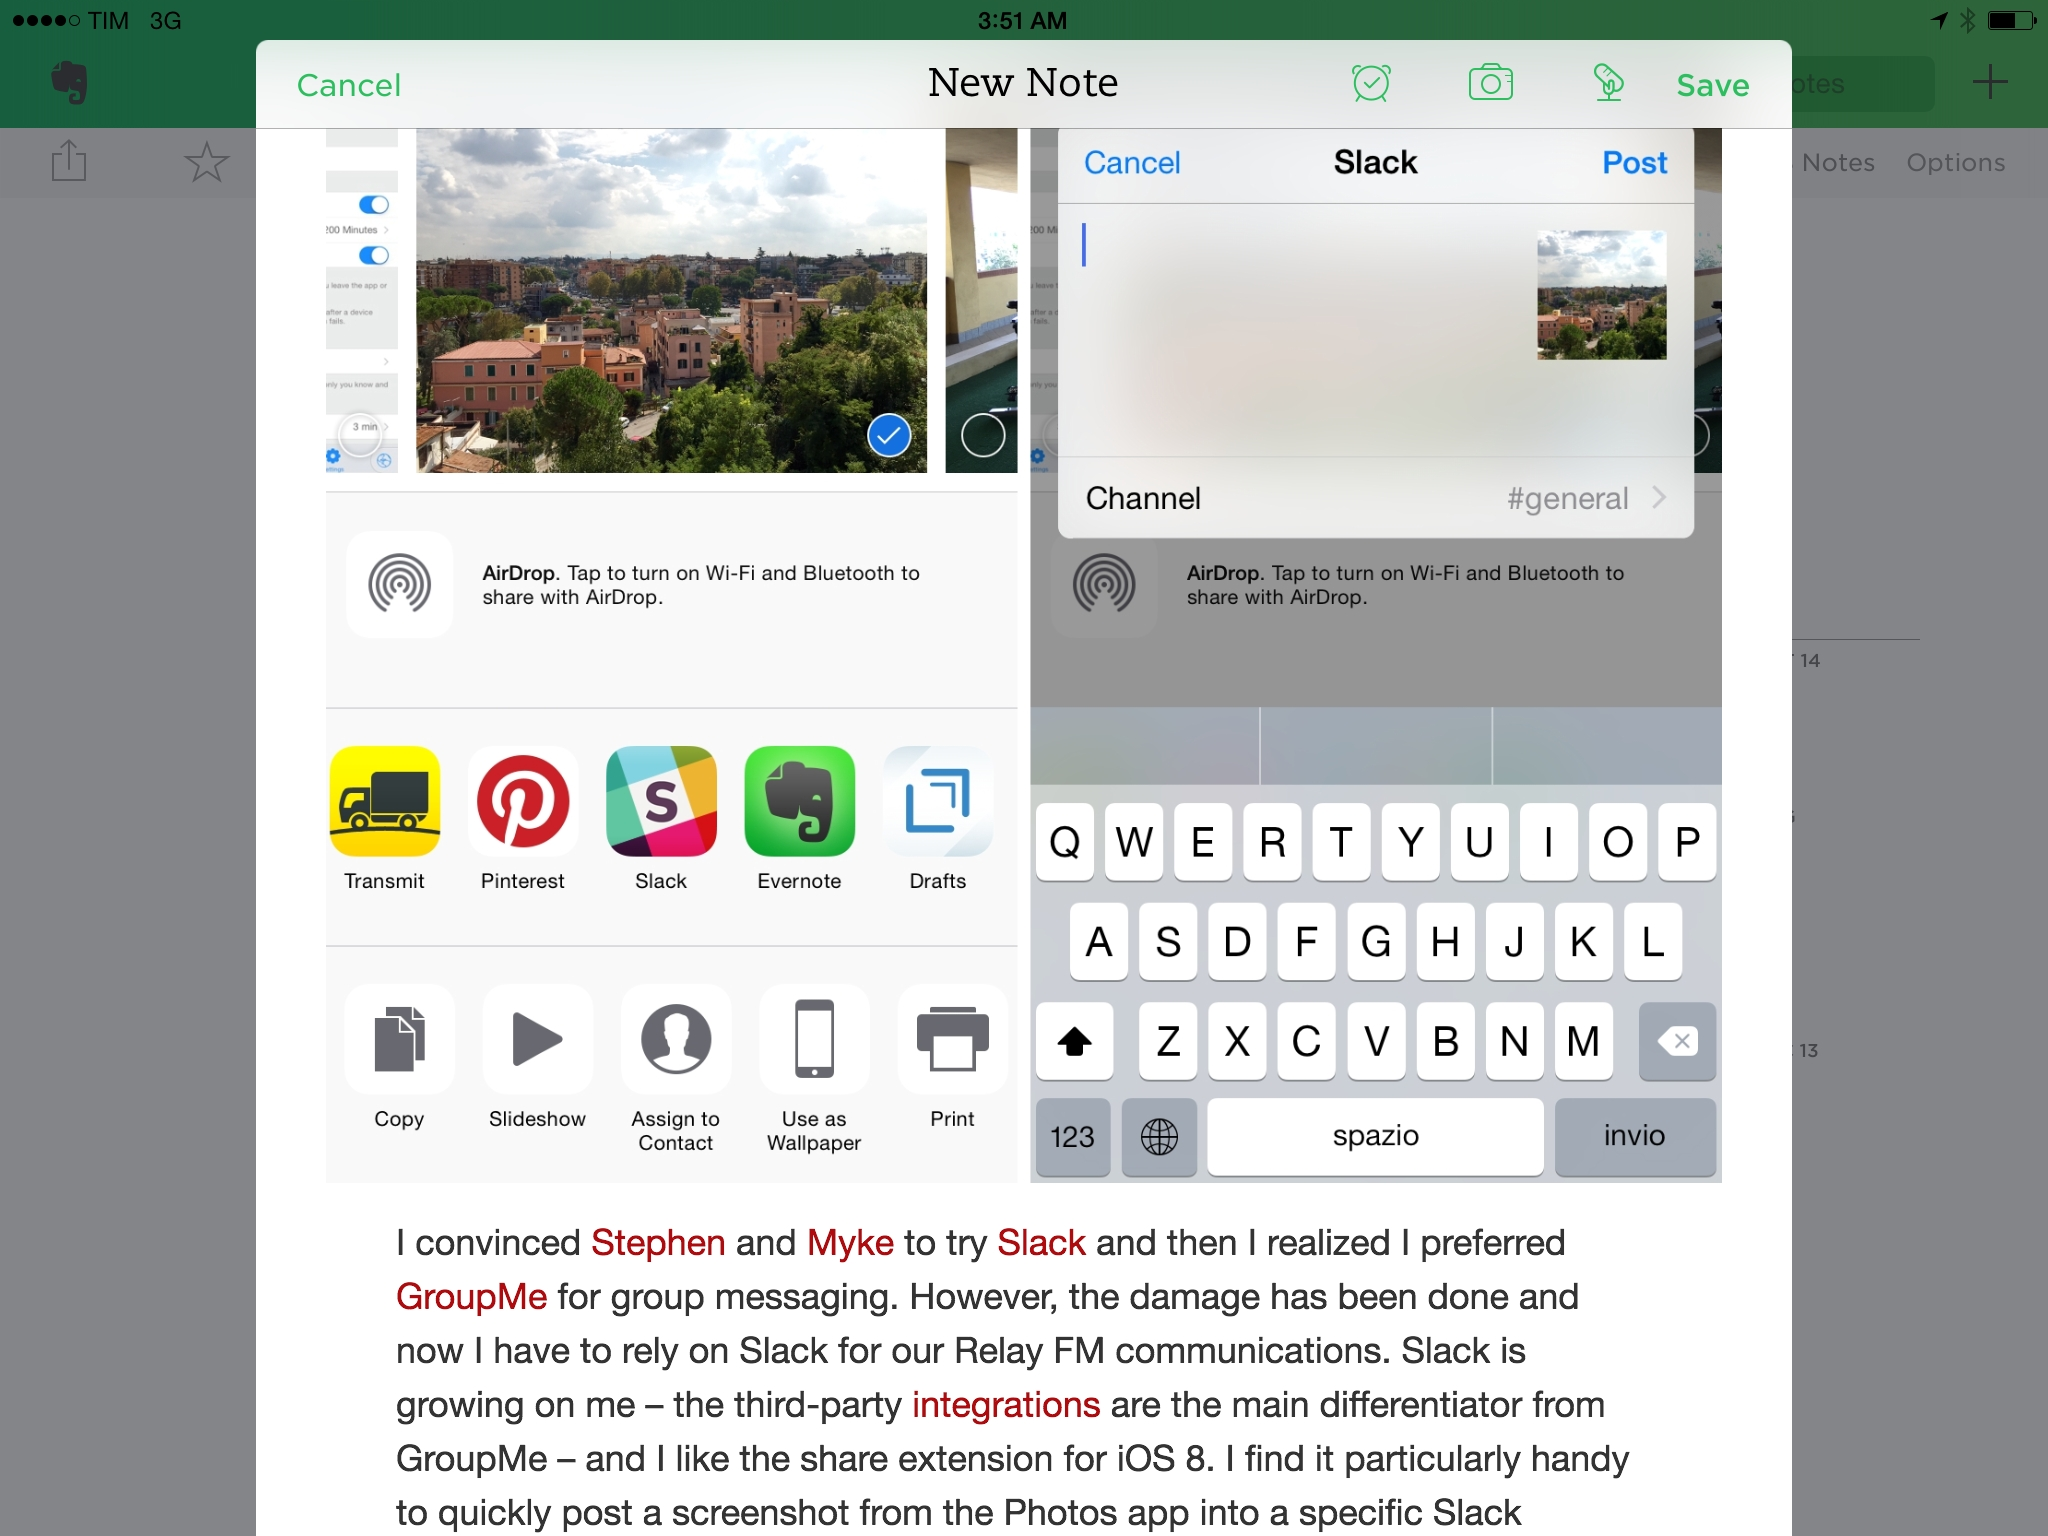 Pasting rich text saved with Clips into Evernote.